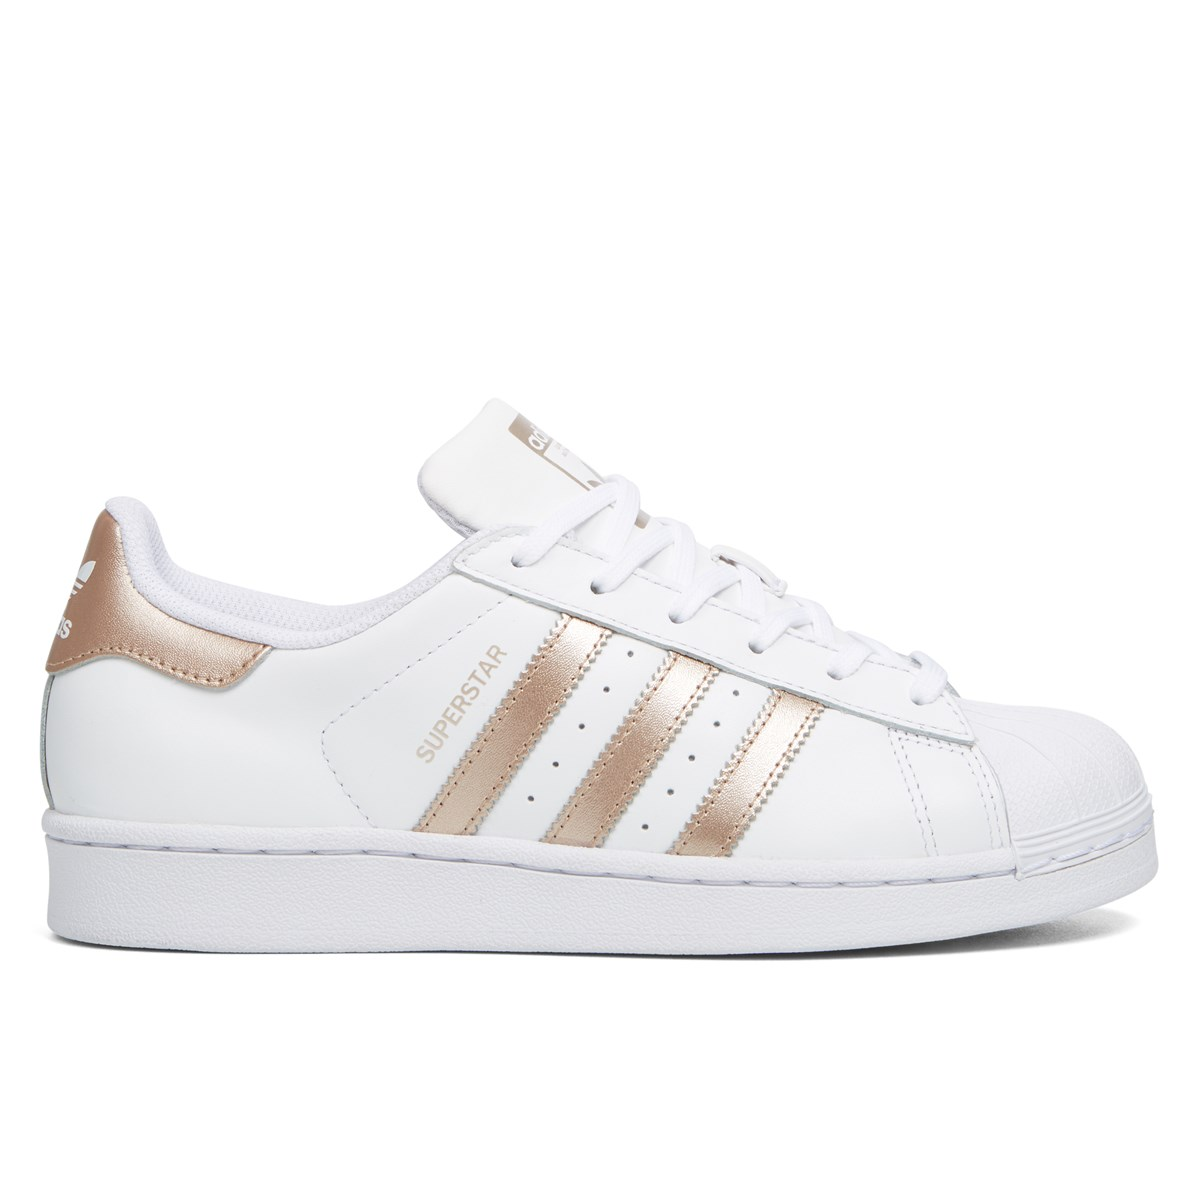 6923d8d1ddff Women s Leather Superstar Sneaker in White and Rose Gold